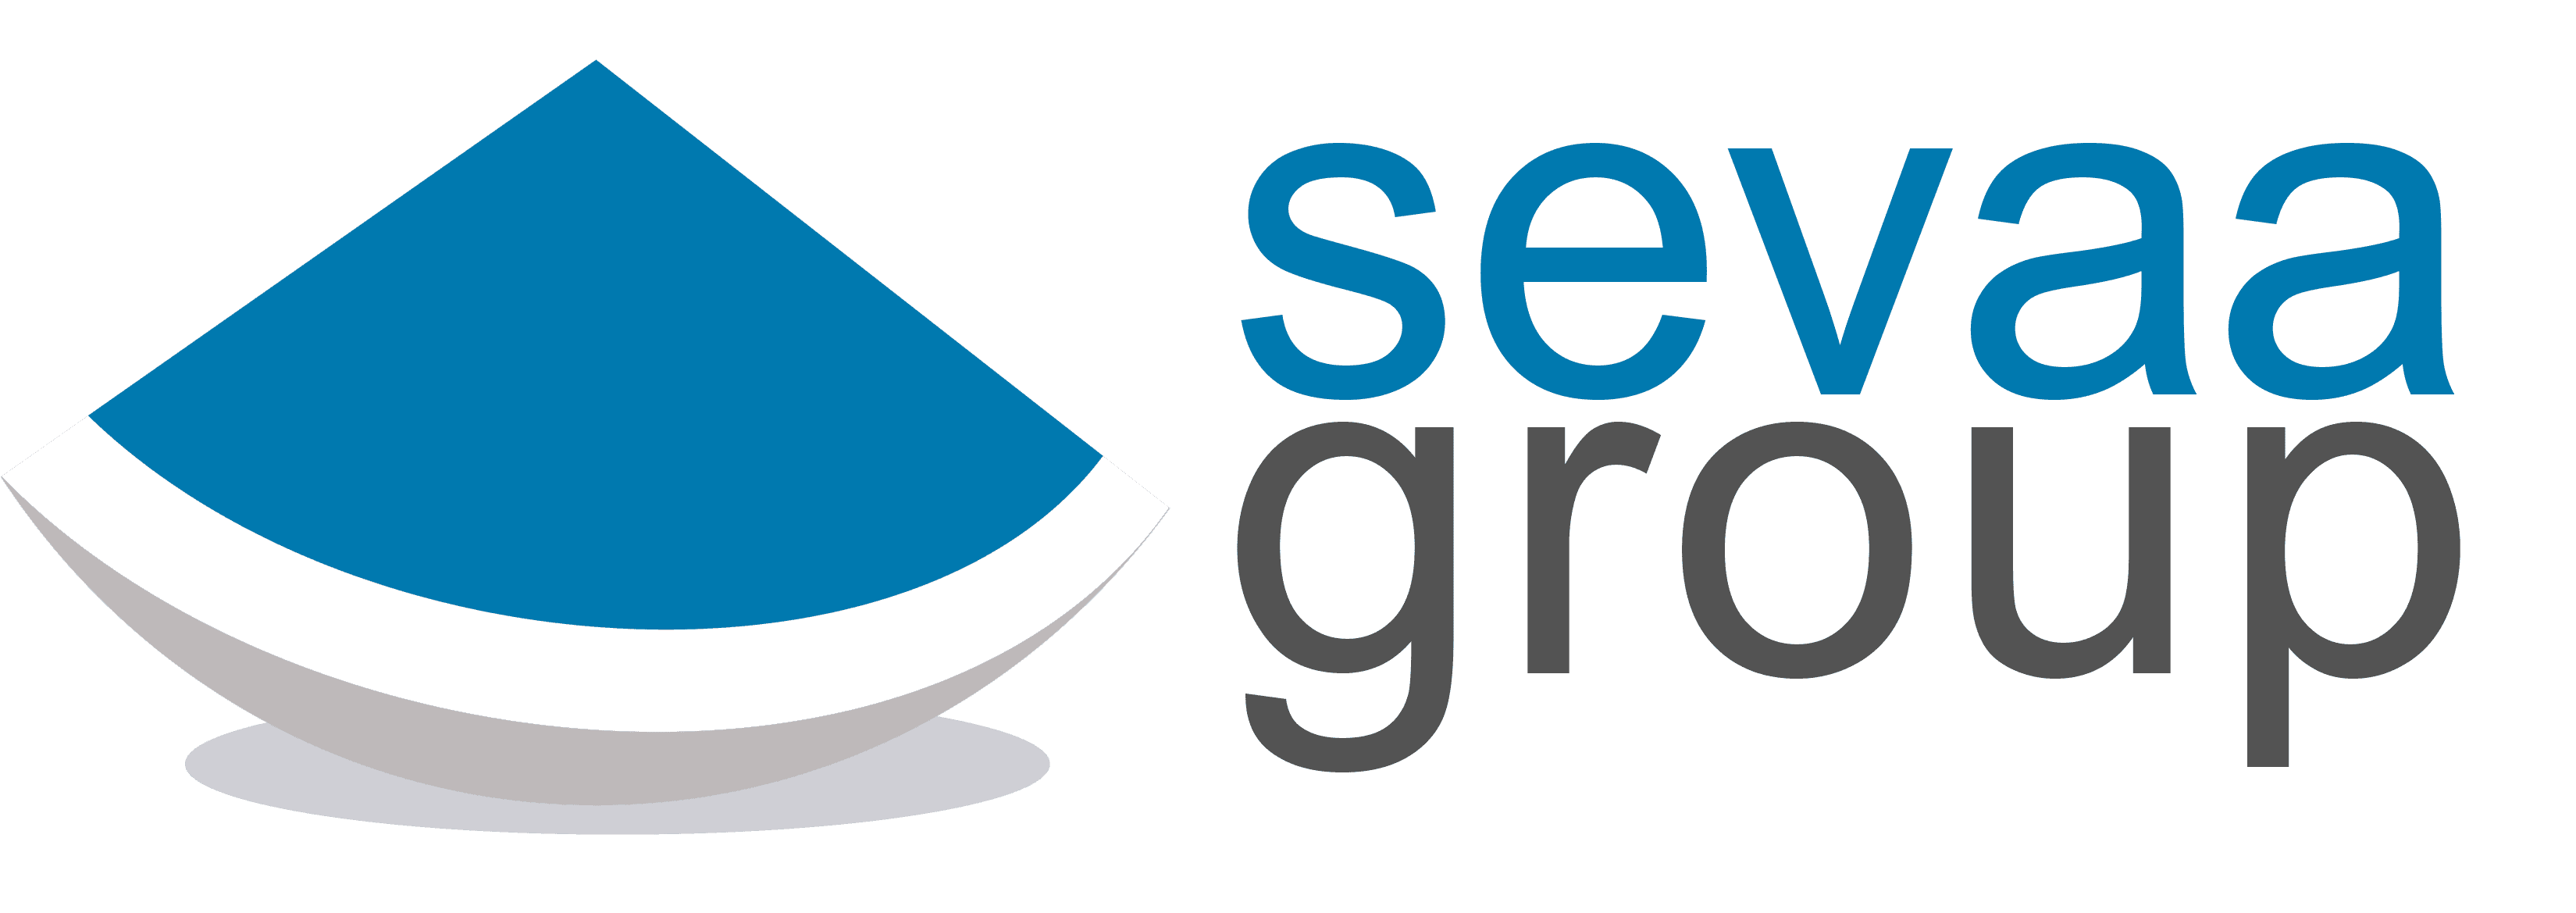 Sevaa Group logo